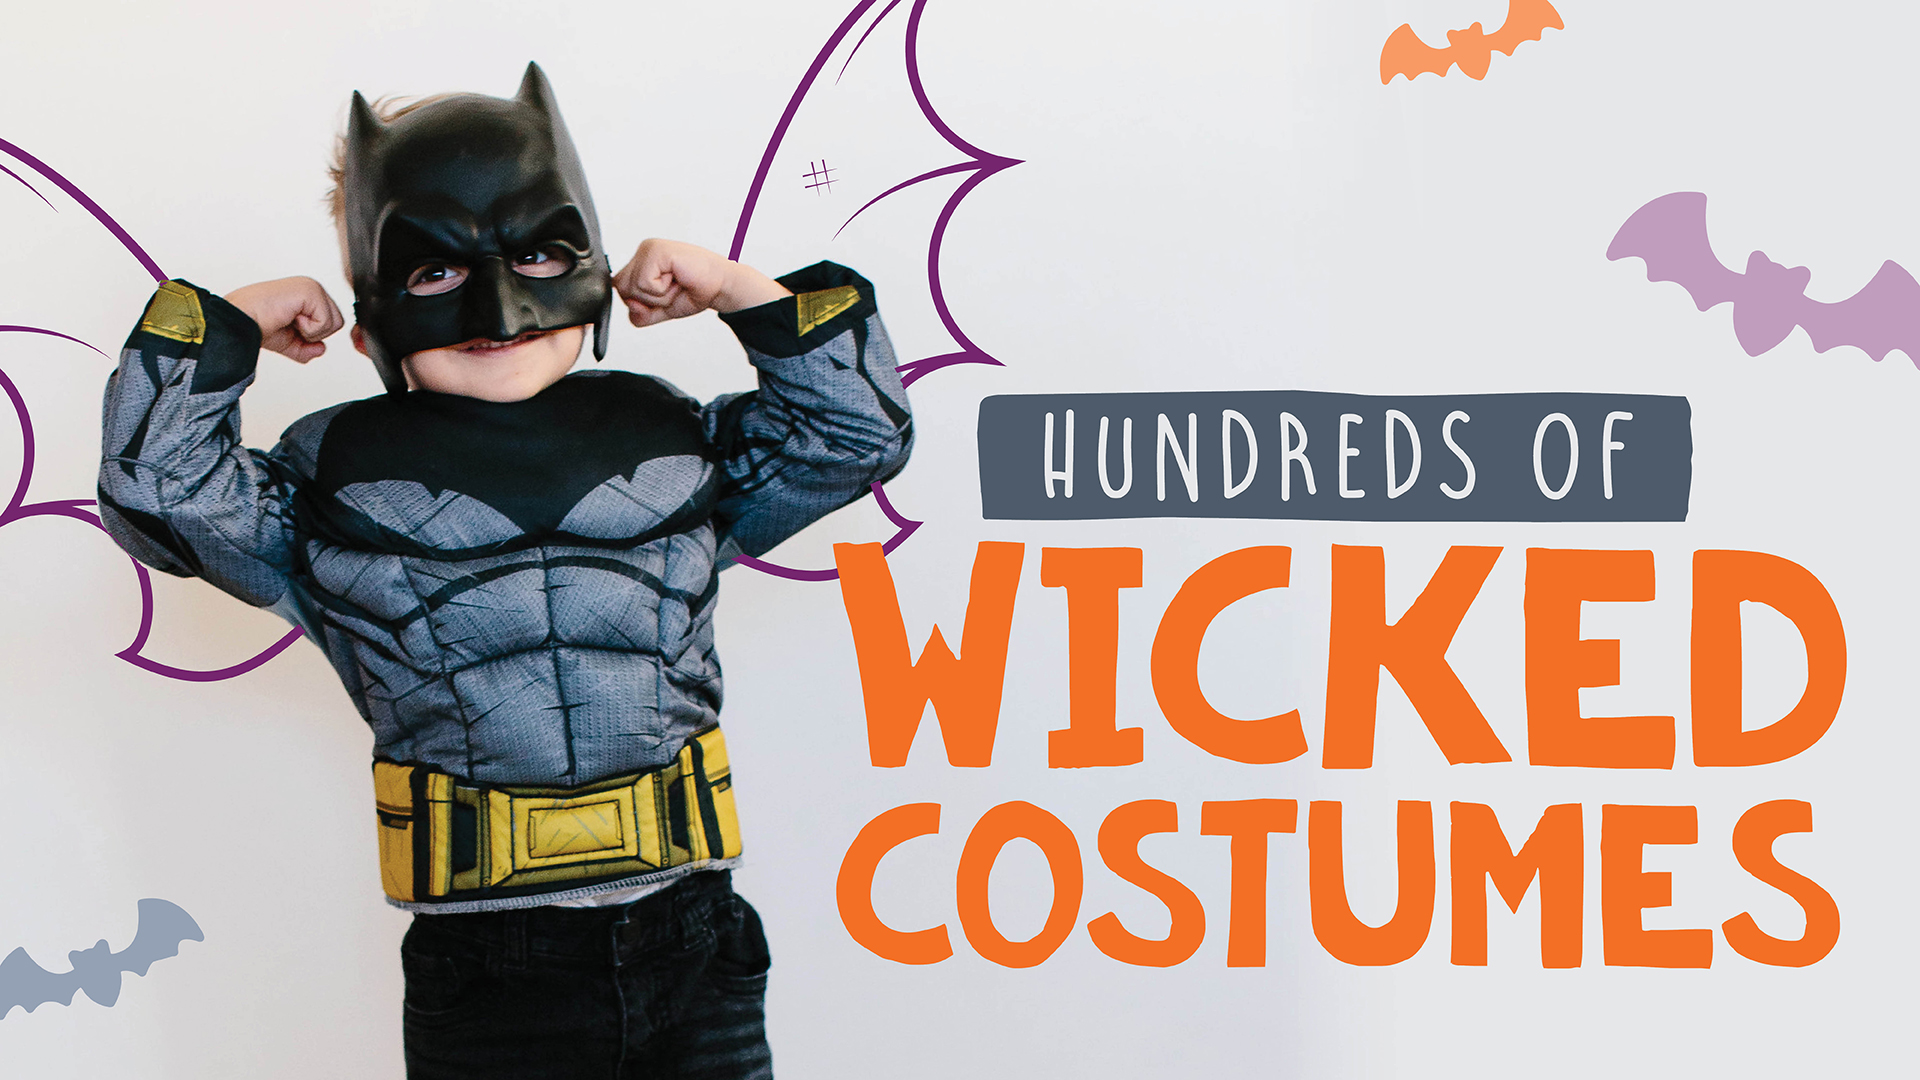 100s of Wicked Costumes